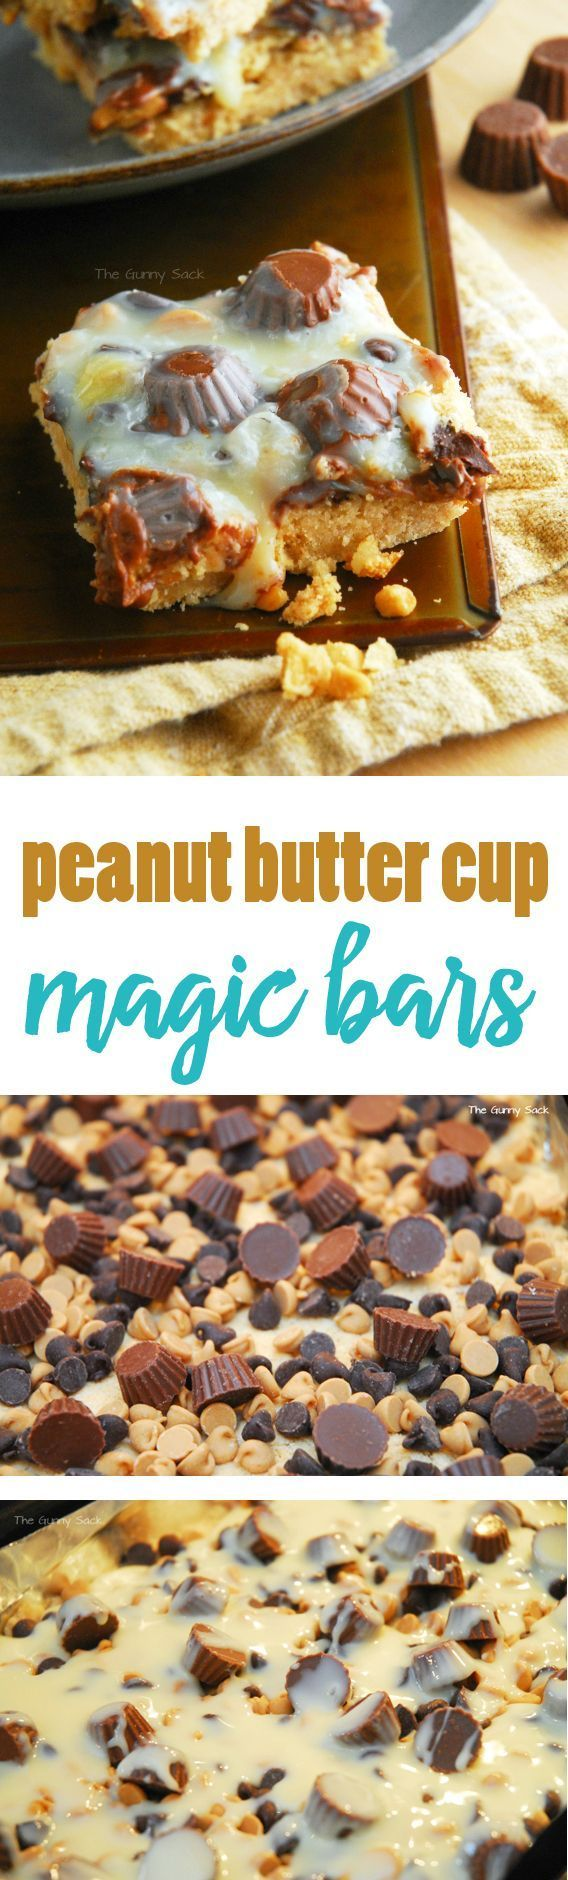 Peanut Butter Cup Magic Bars Recipe | Reese's Peanut Butter Cup Minis are the…